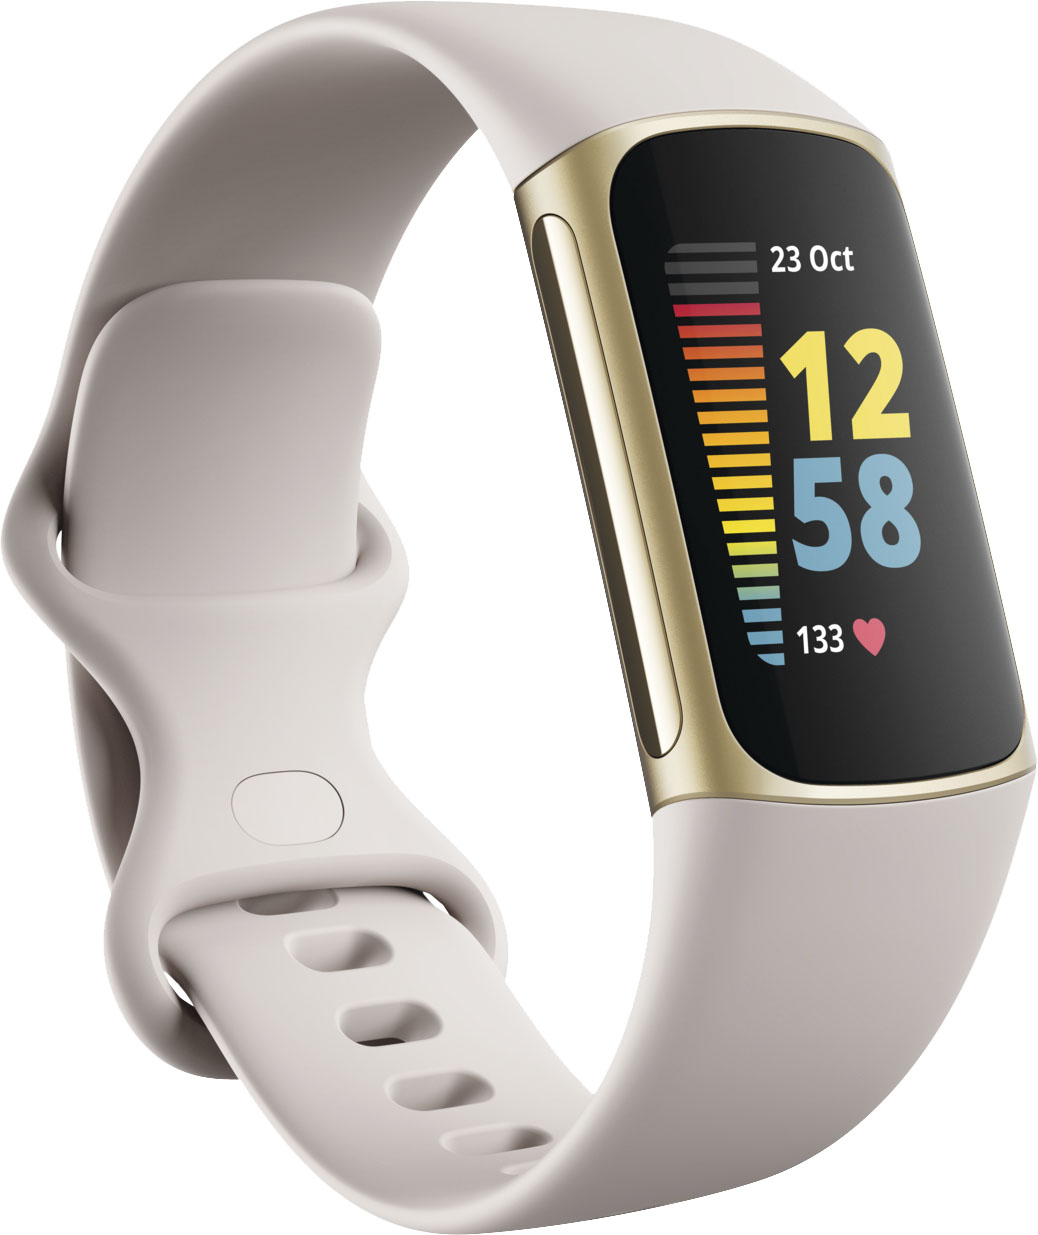 fitbit-charge-5-7.jfif